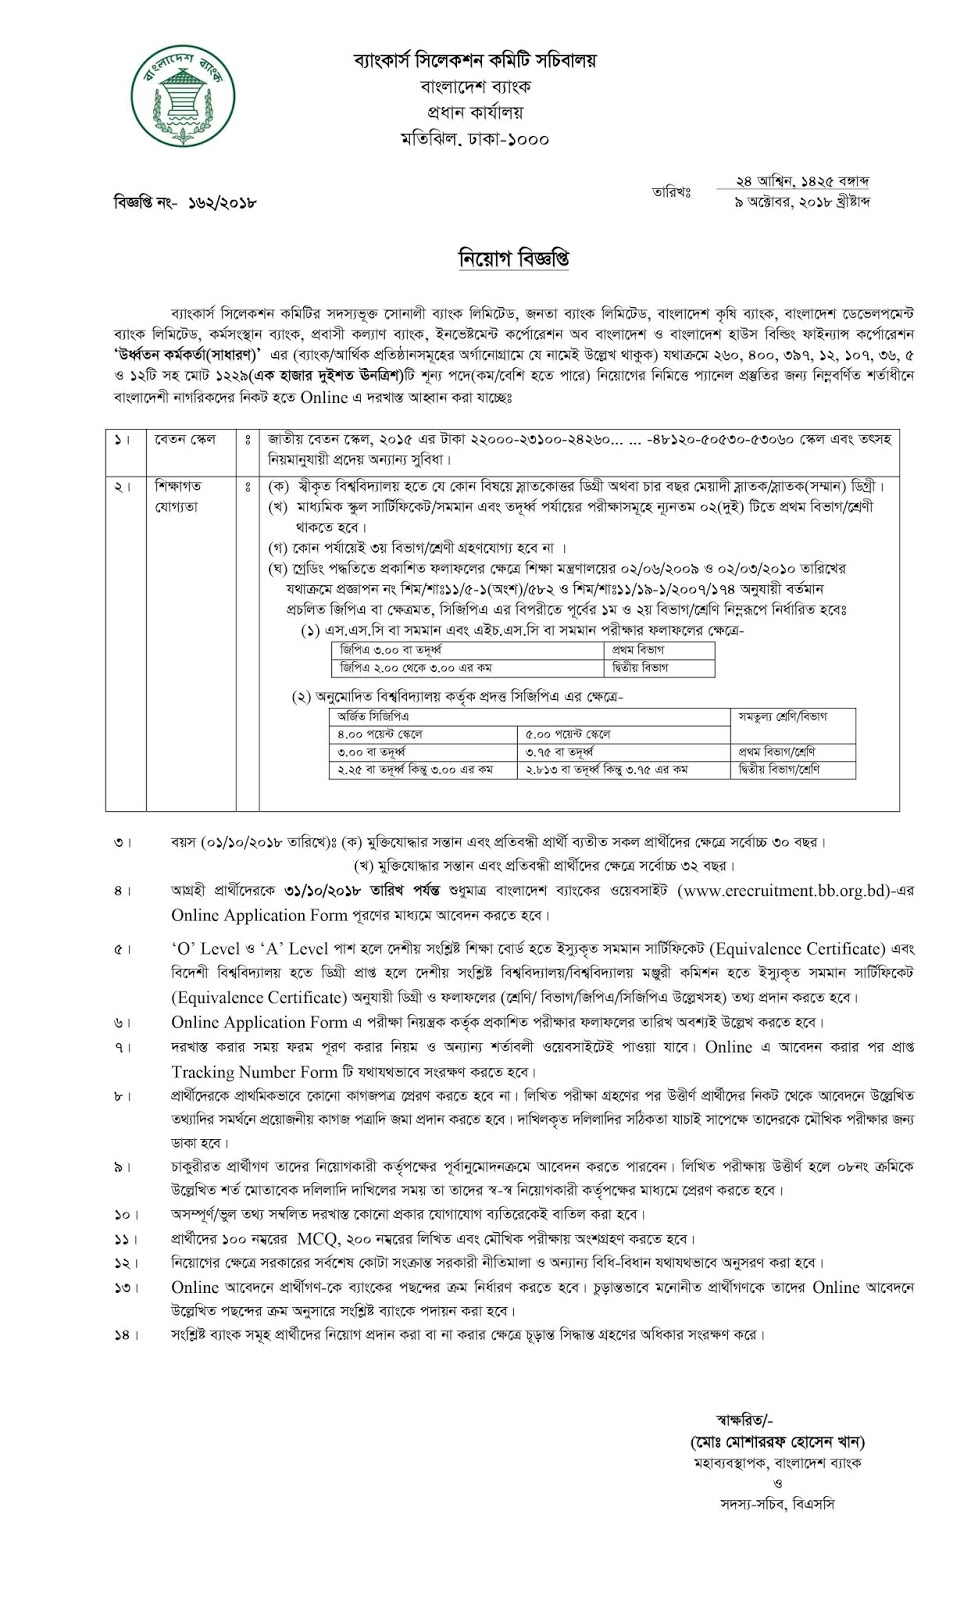 BSCS Senior Officer (General) Recruitment Circular 2018